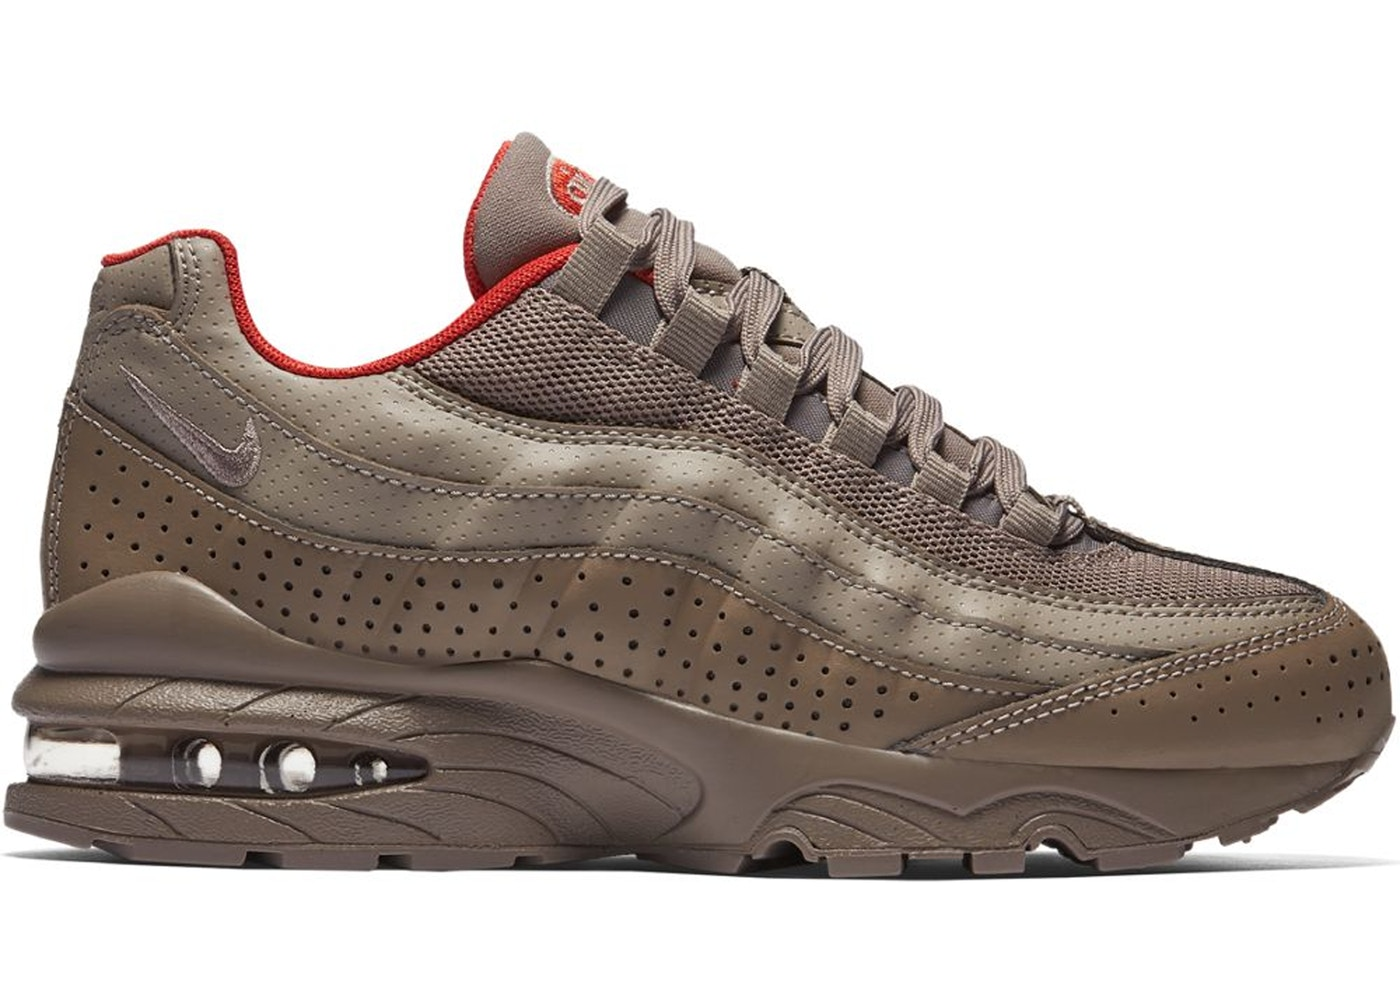 Nike Air Max 95 Shoes Lowest Ask